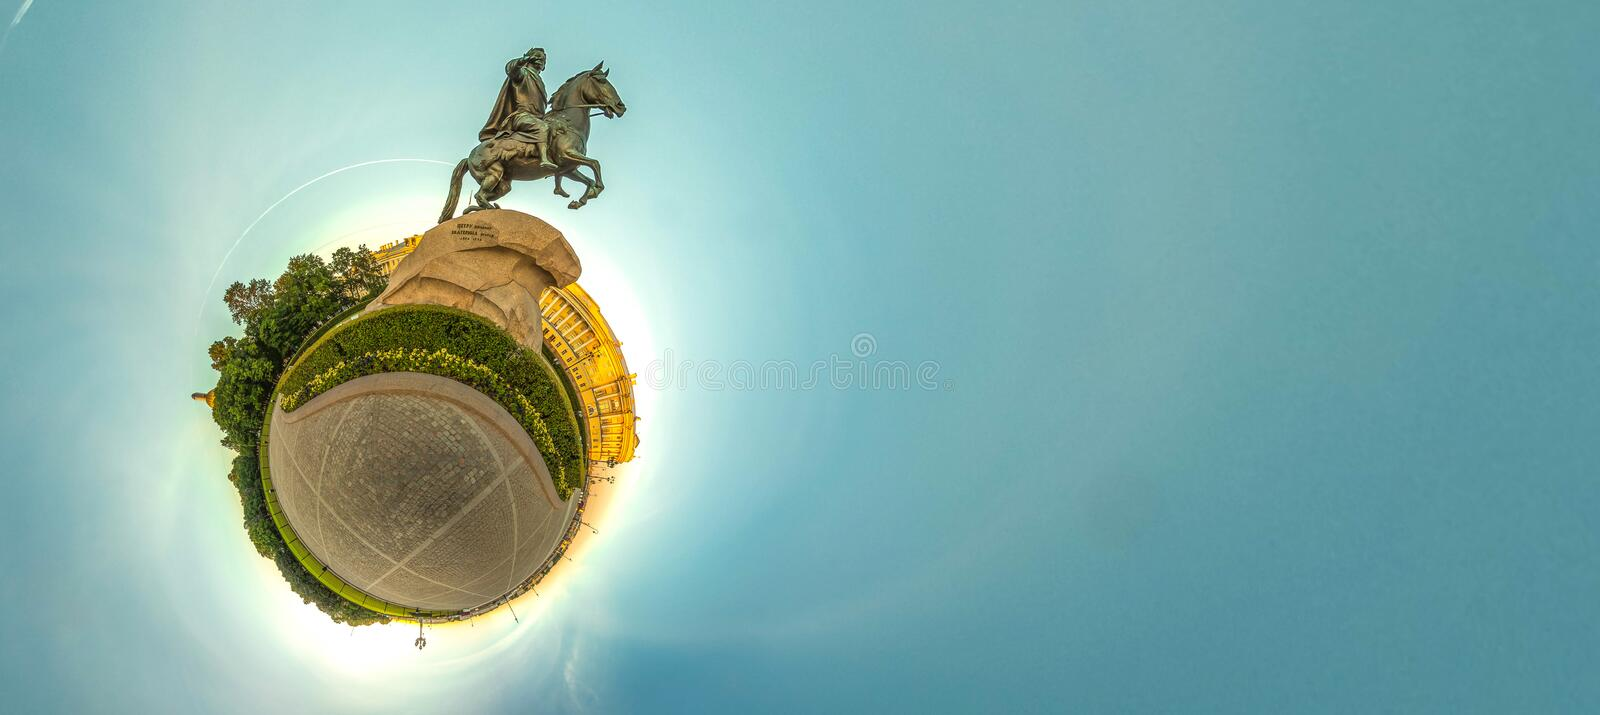 Little planet with bronze hourseman. Russia, St. Petersburg stock image